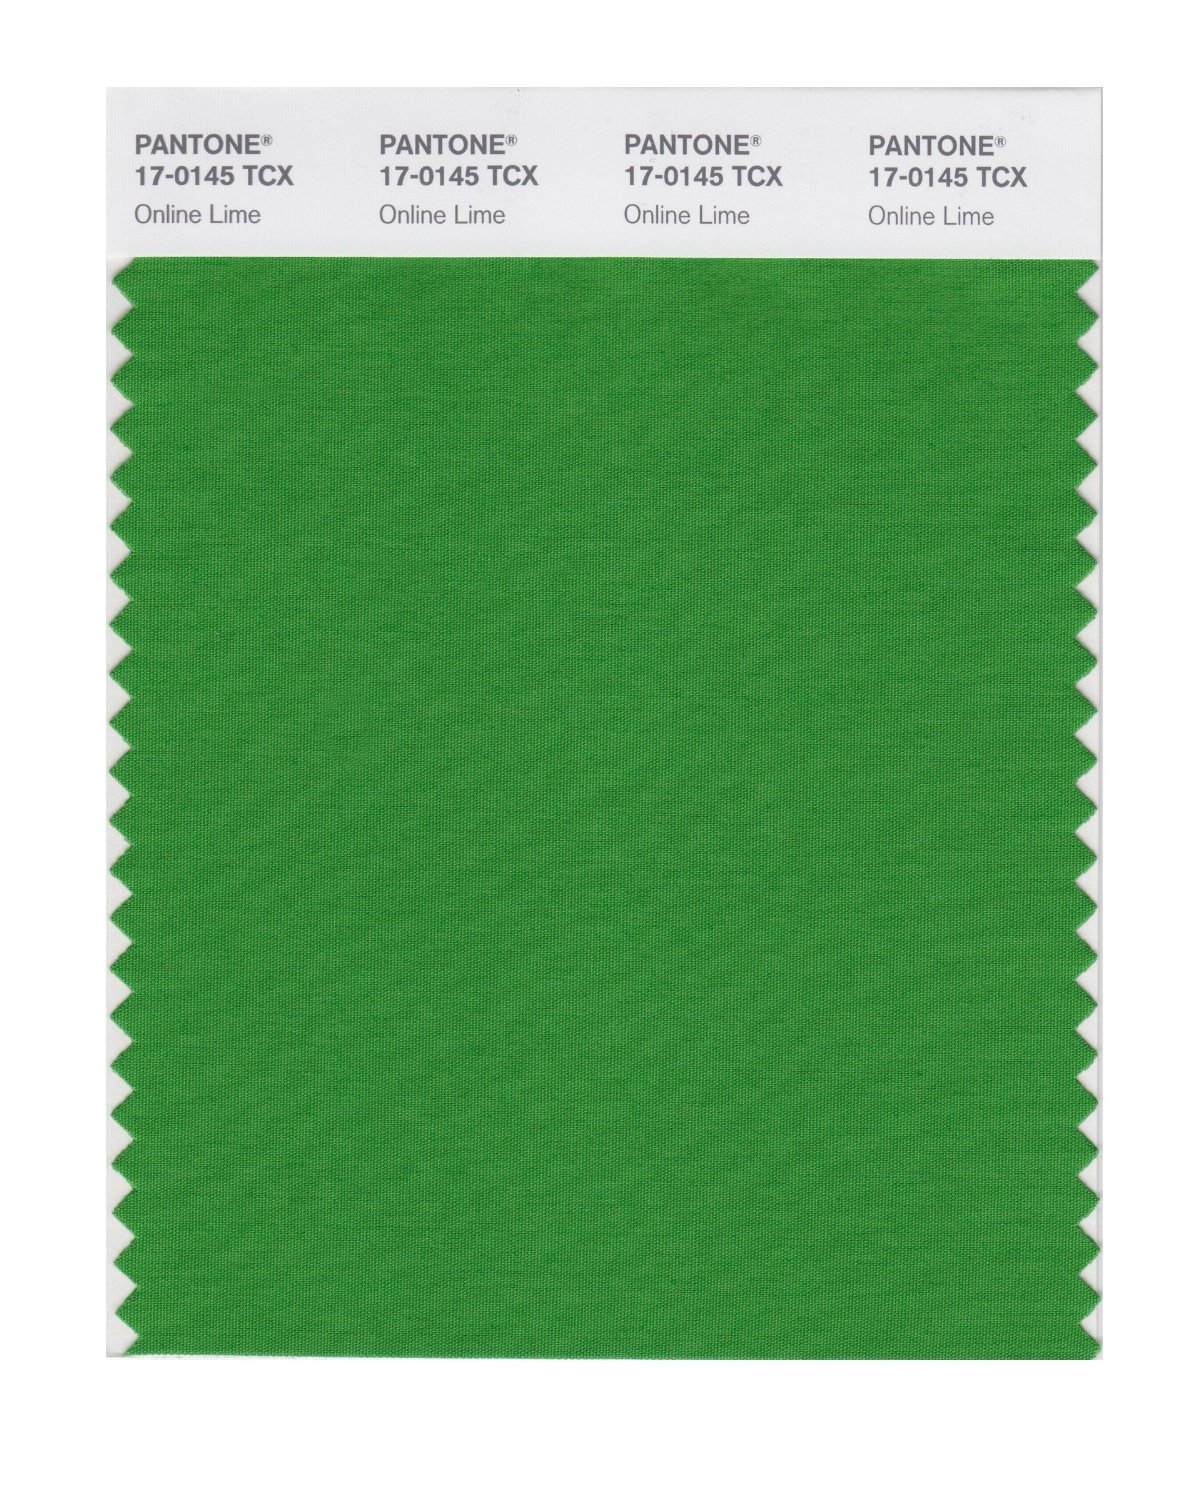 Pantone Smart Swatch 17-0145 Online Lime